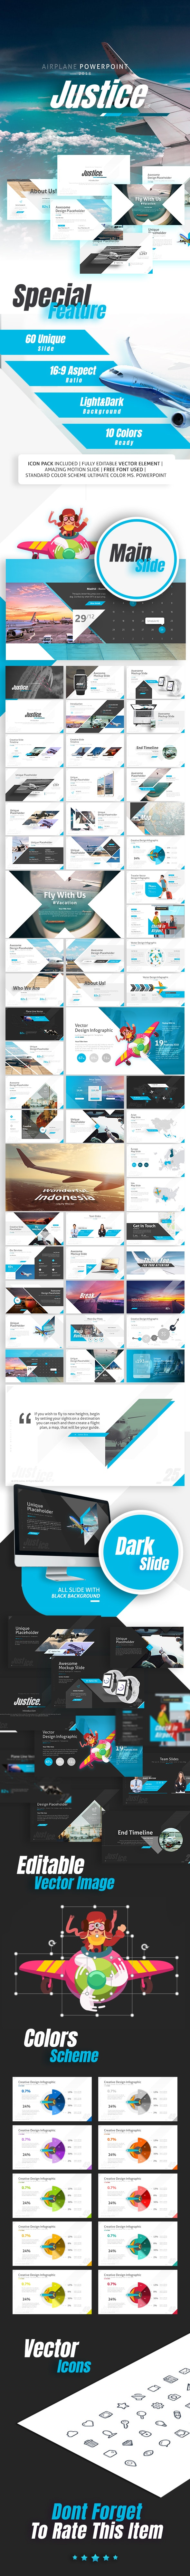 Justice Airplane Presentation By Rrgraph Graphicriver